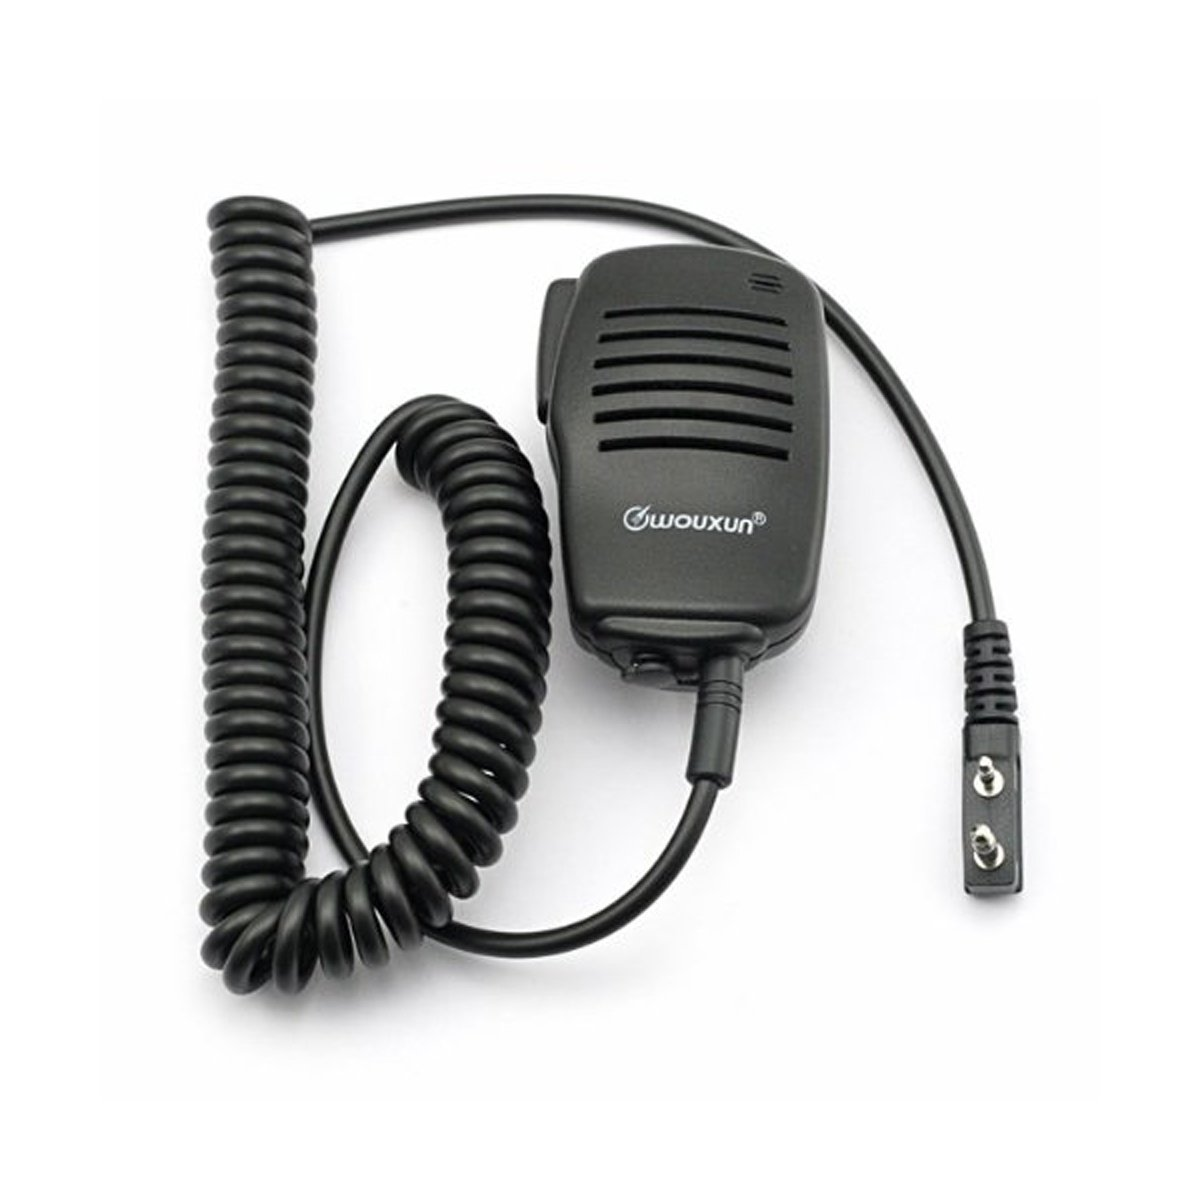 Wouxun Walkie Talkie Original Remote Speaker Microphone for KG-UVD1P UV6D UV2D UV3D 699E 818 Ham 2-way Radio